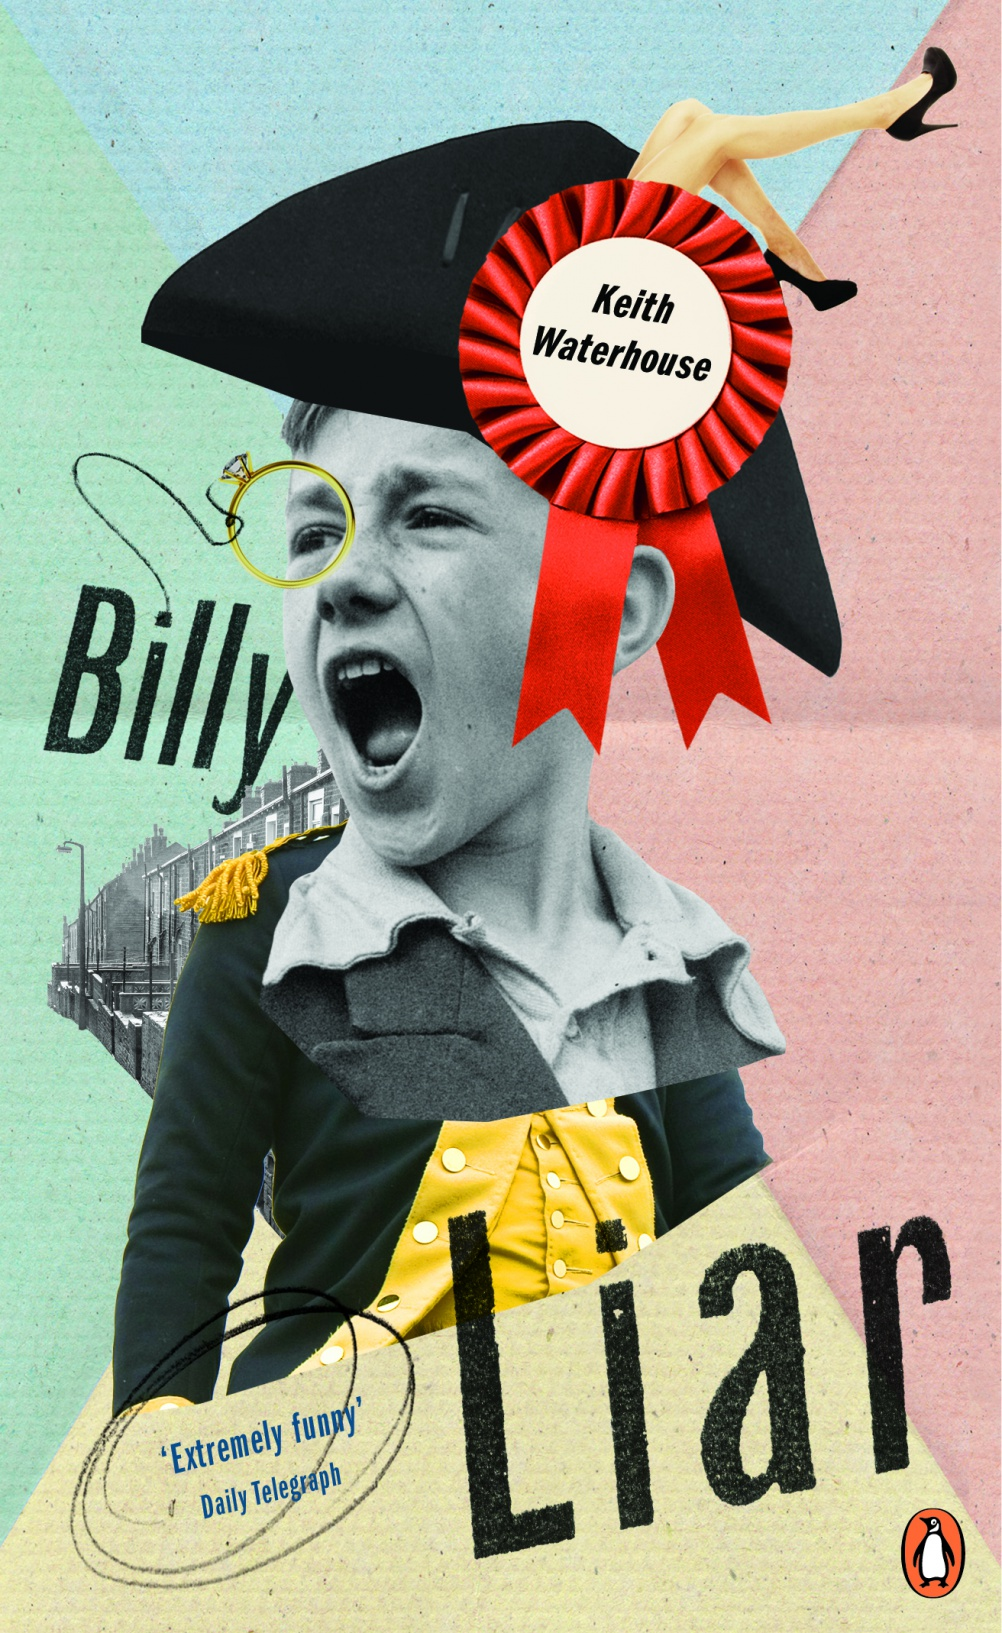 Billy Liar by Keith Waterhouse. Cover by Rol Overwekk